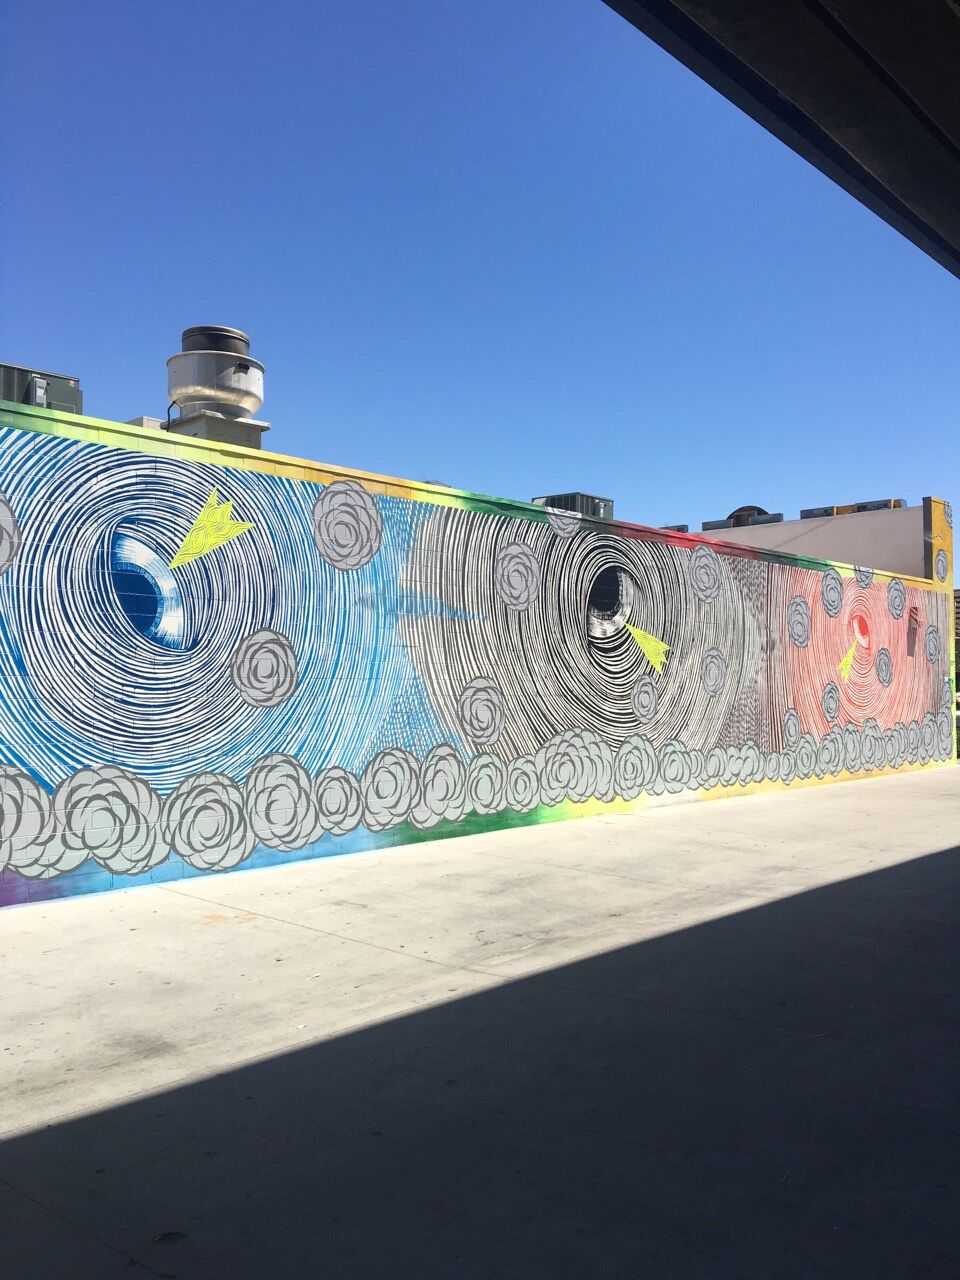 Optical Vortex (Spinning Eyes), 2016; Acrylic on wall; 12 x 30 x 6 feet; Courtesy of the artist and Hosfelt Gallery